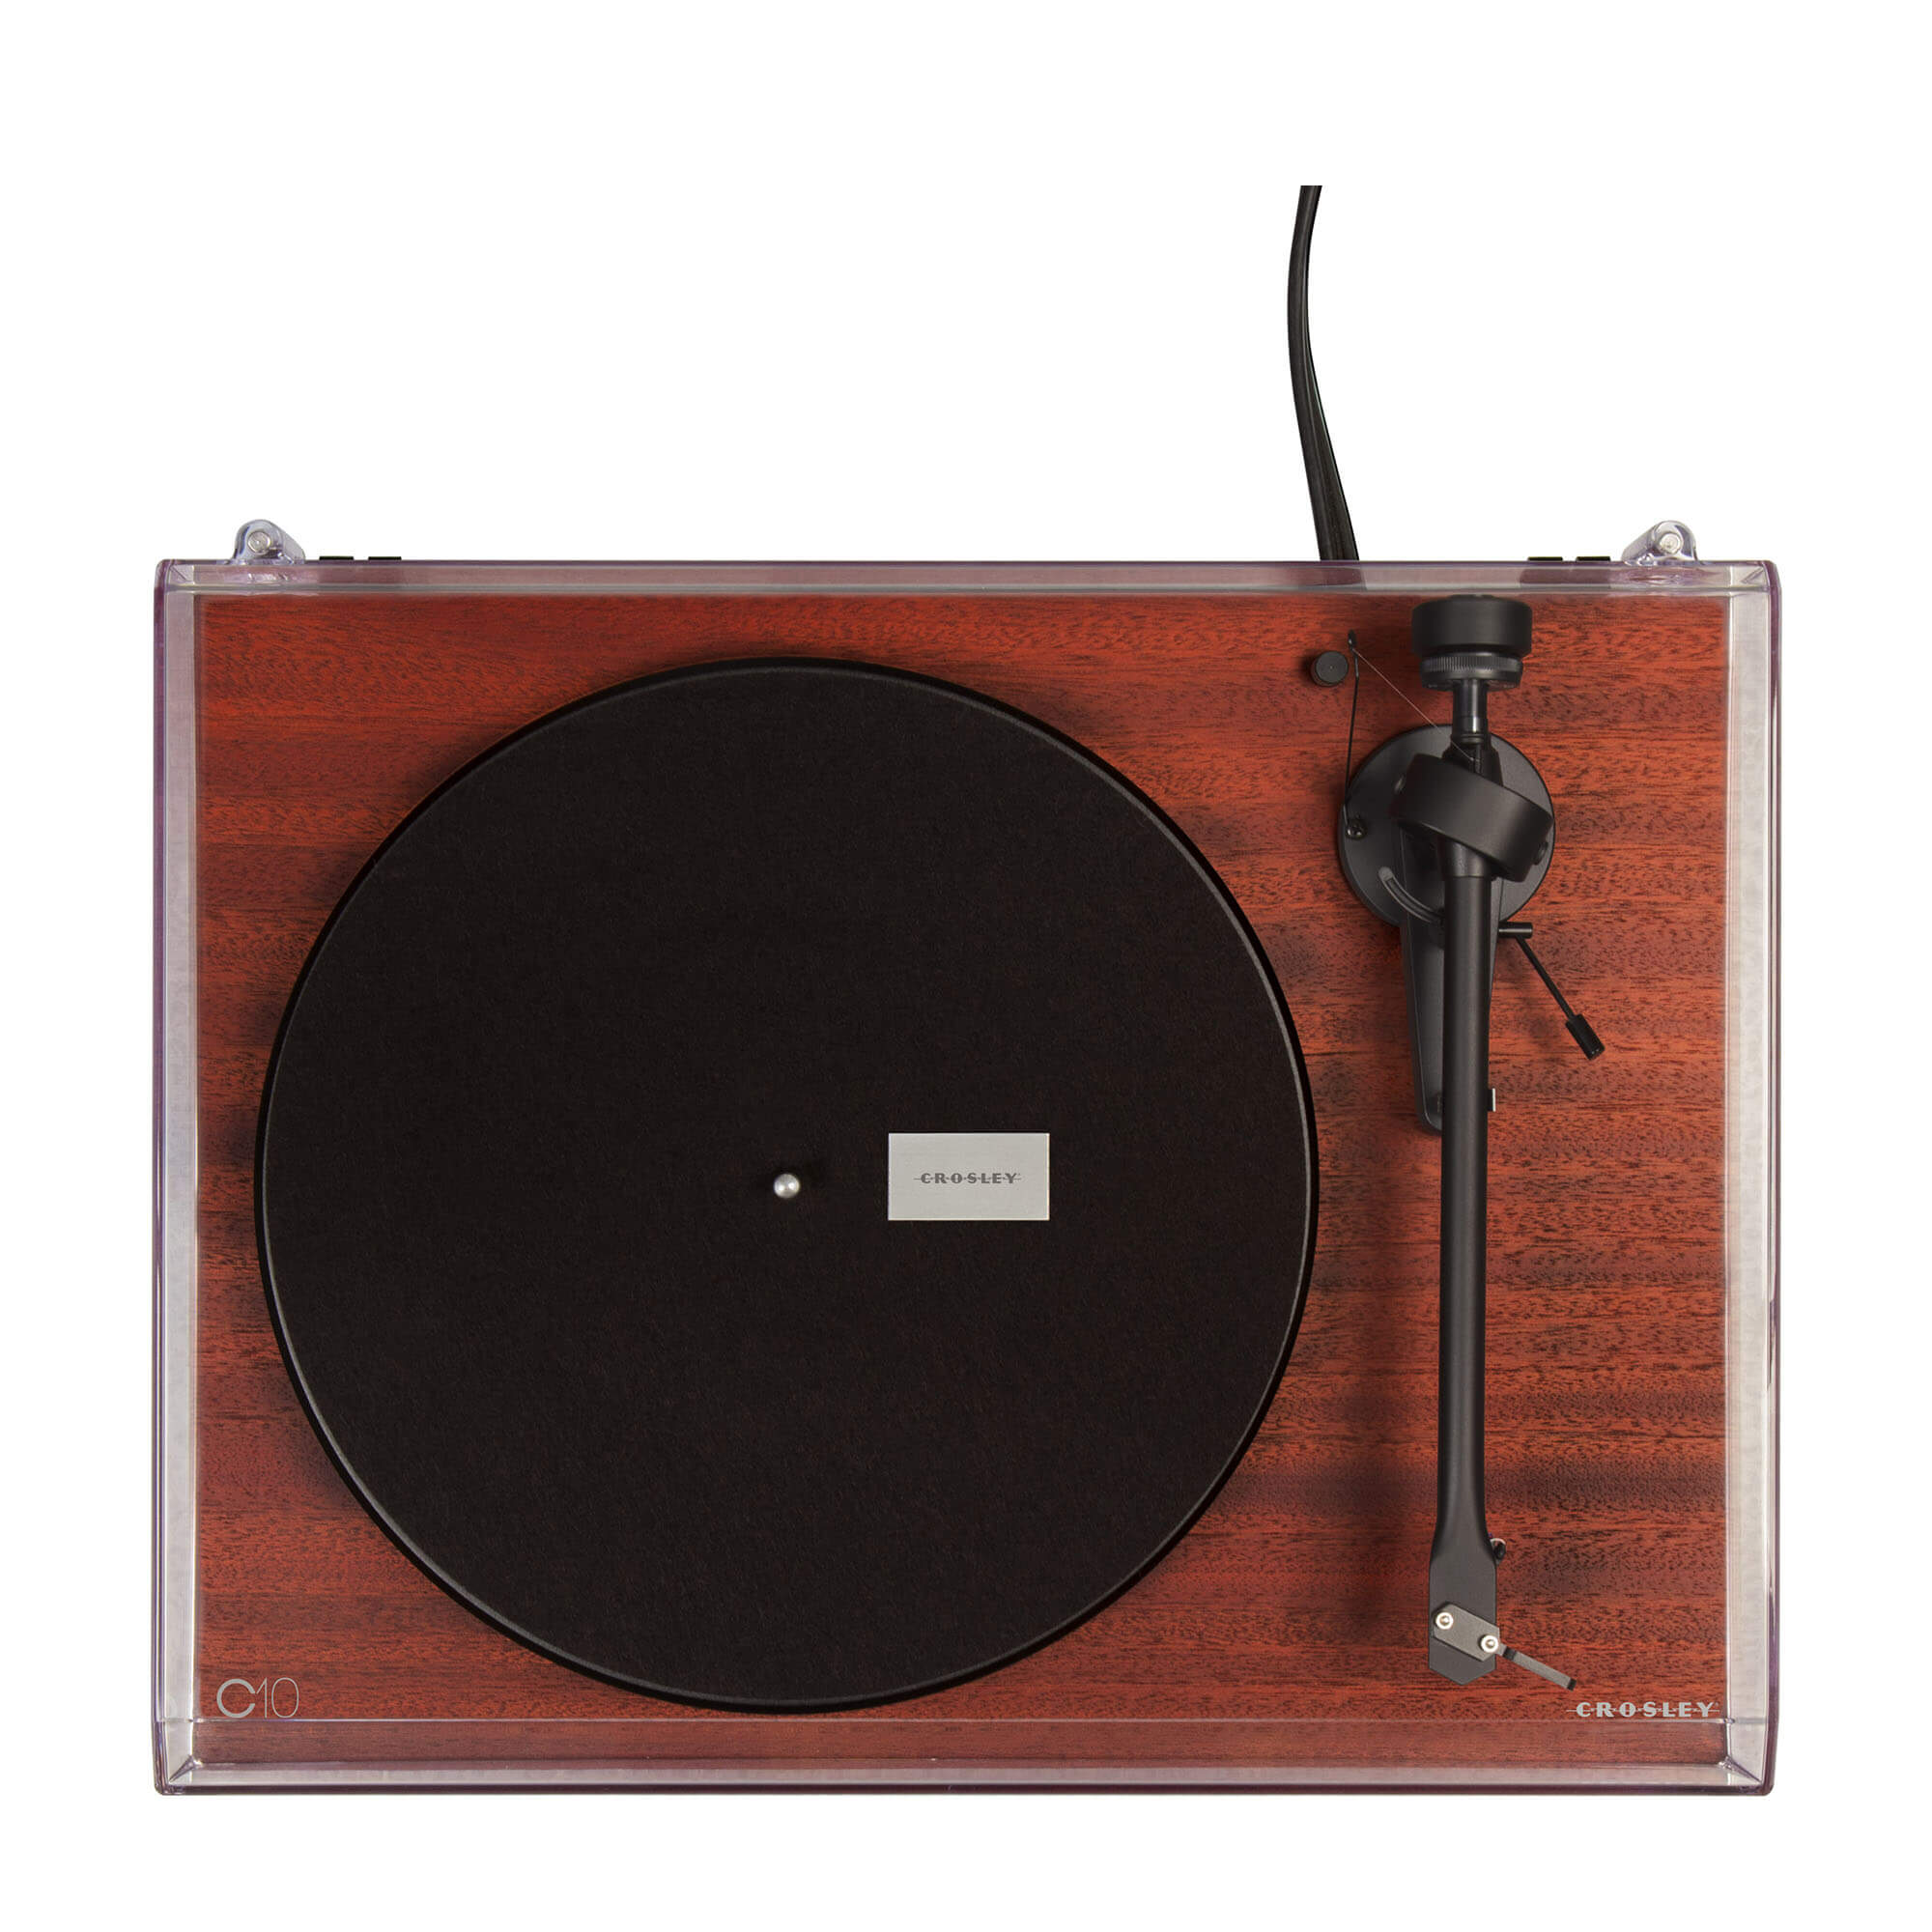 Crosley C10 Natural Aerial